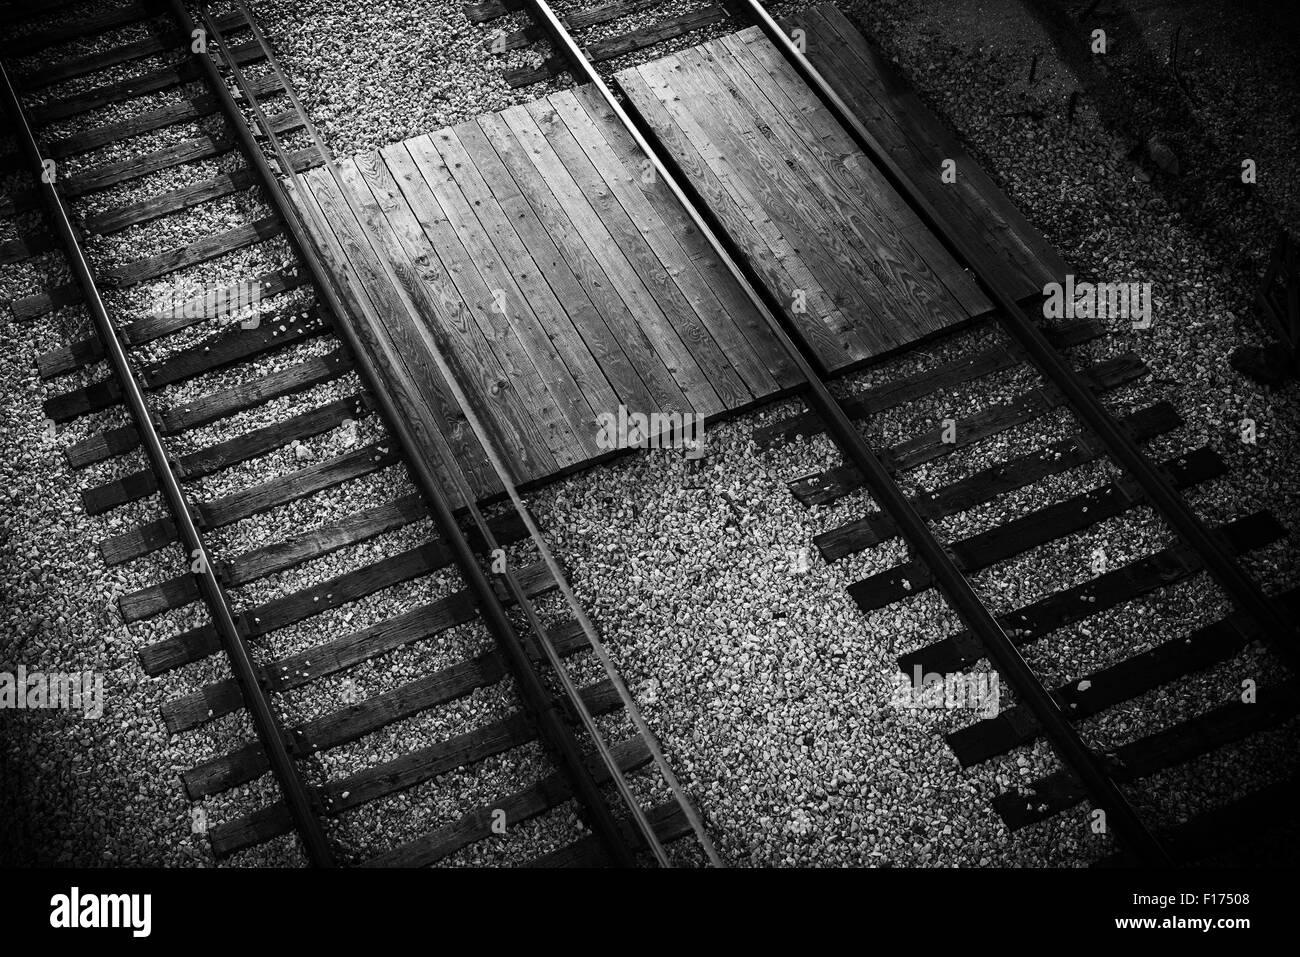 Railroad Tracks Closeup From Above. Black and White Railroad Theme. - Stock Image